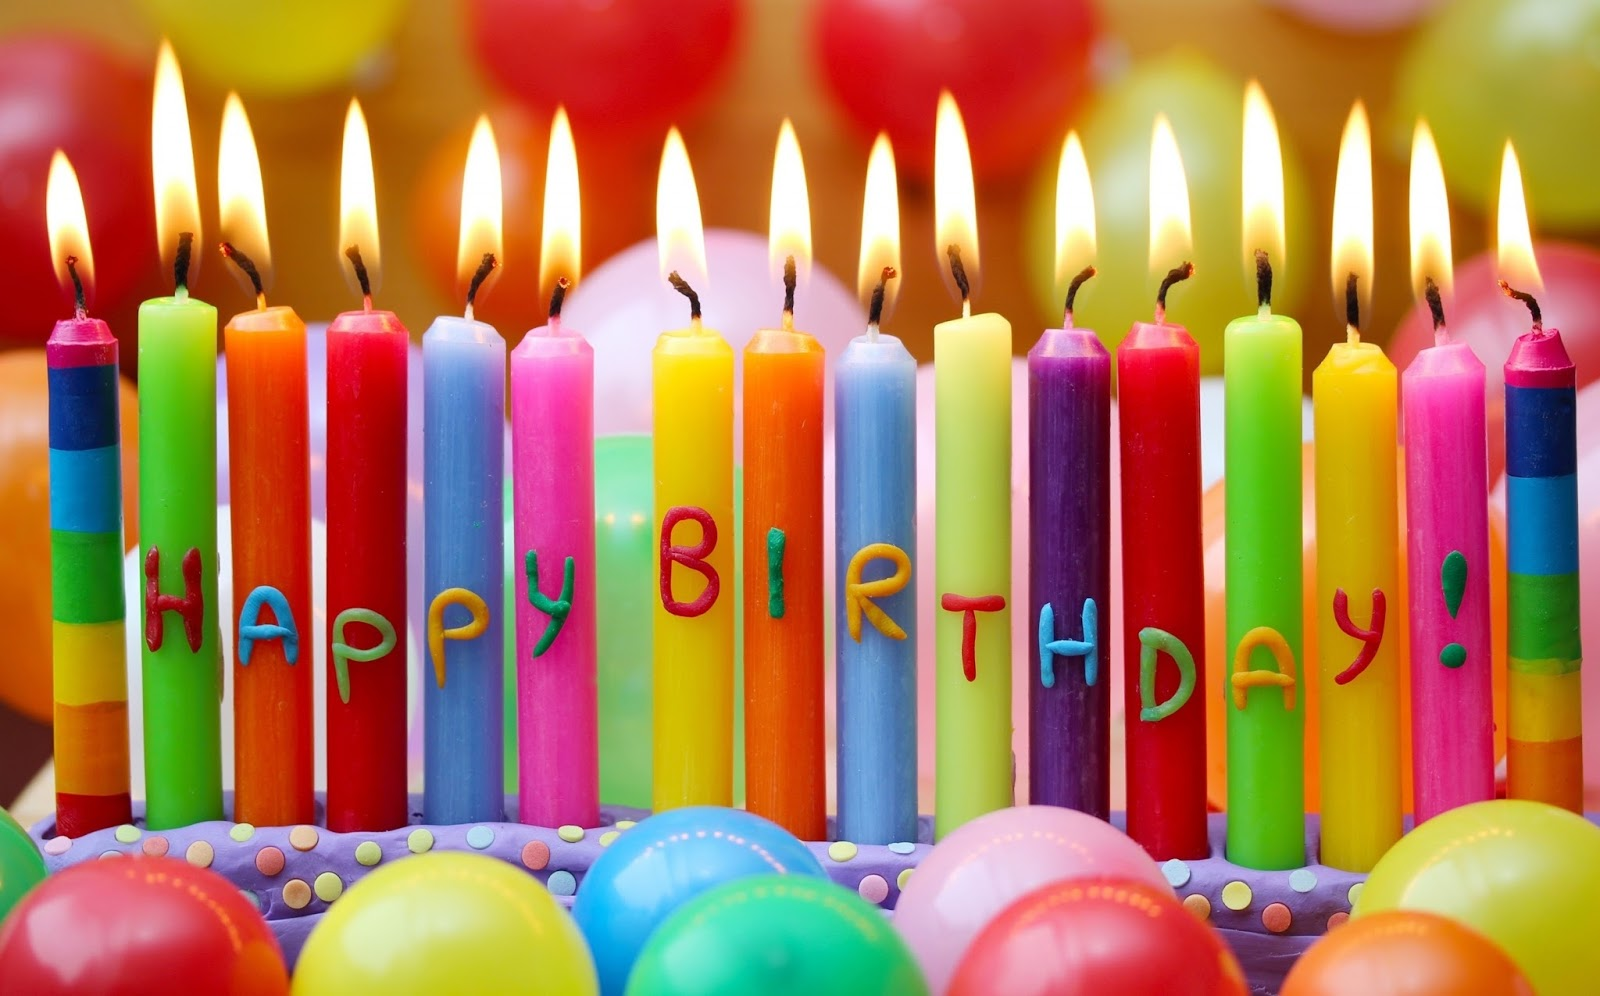 Best 50 Happy Birthday Wishes HD Images Cake Pics Wallpaper